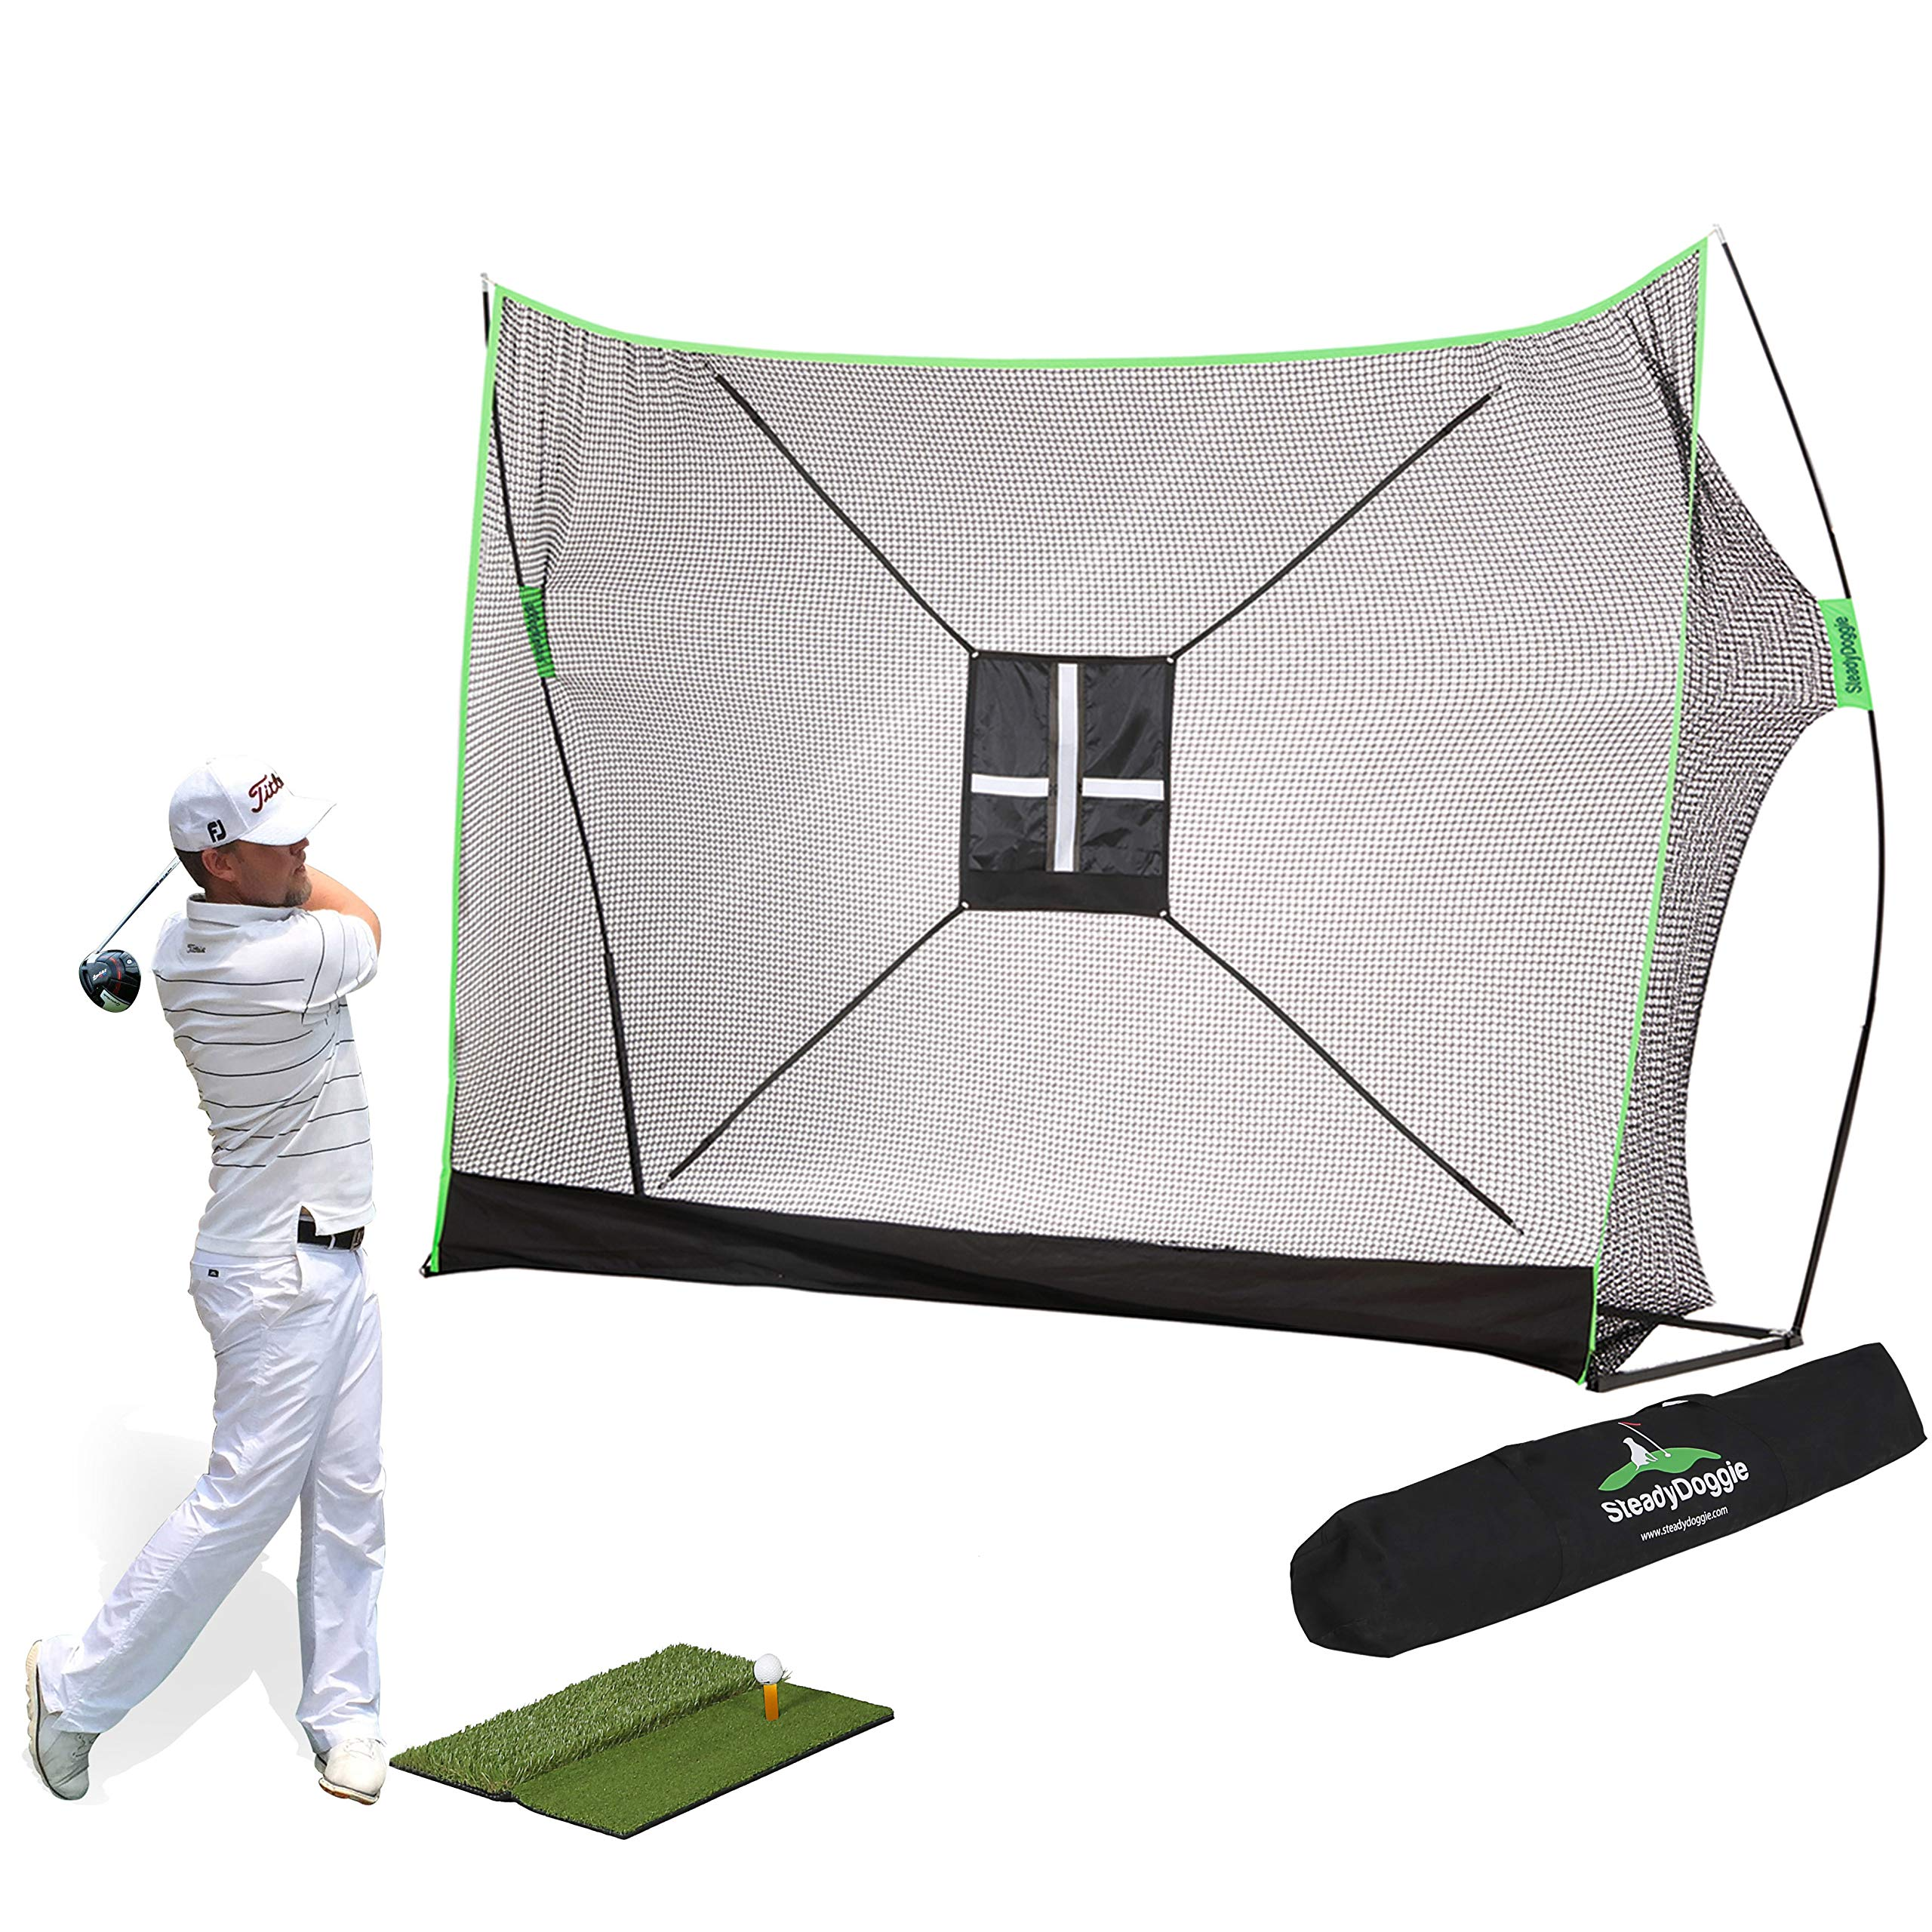 Golf Net Bundle 4pc | Professional Patent Pending Design Golf Practice Net | Dual-Turf Golf Mat, Chipping Target and Carry Bag | The Right Choice of Golf Nets for Backyard Driving & Golf Hitting Nets by SteadyDoggie